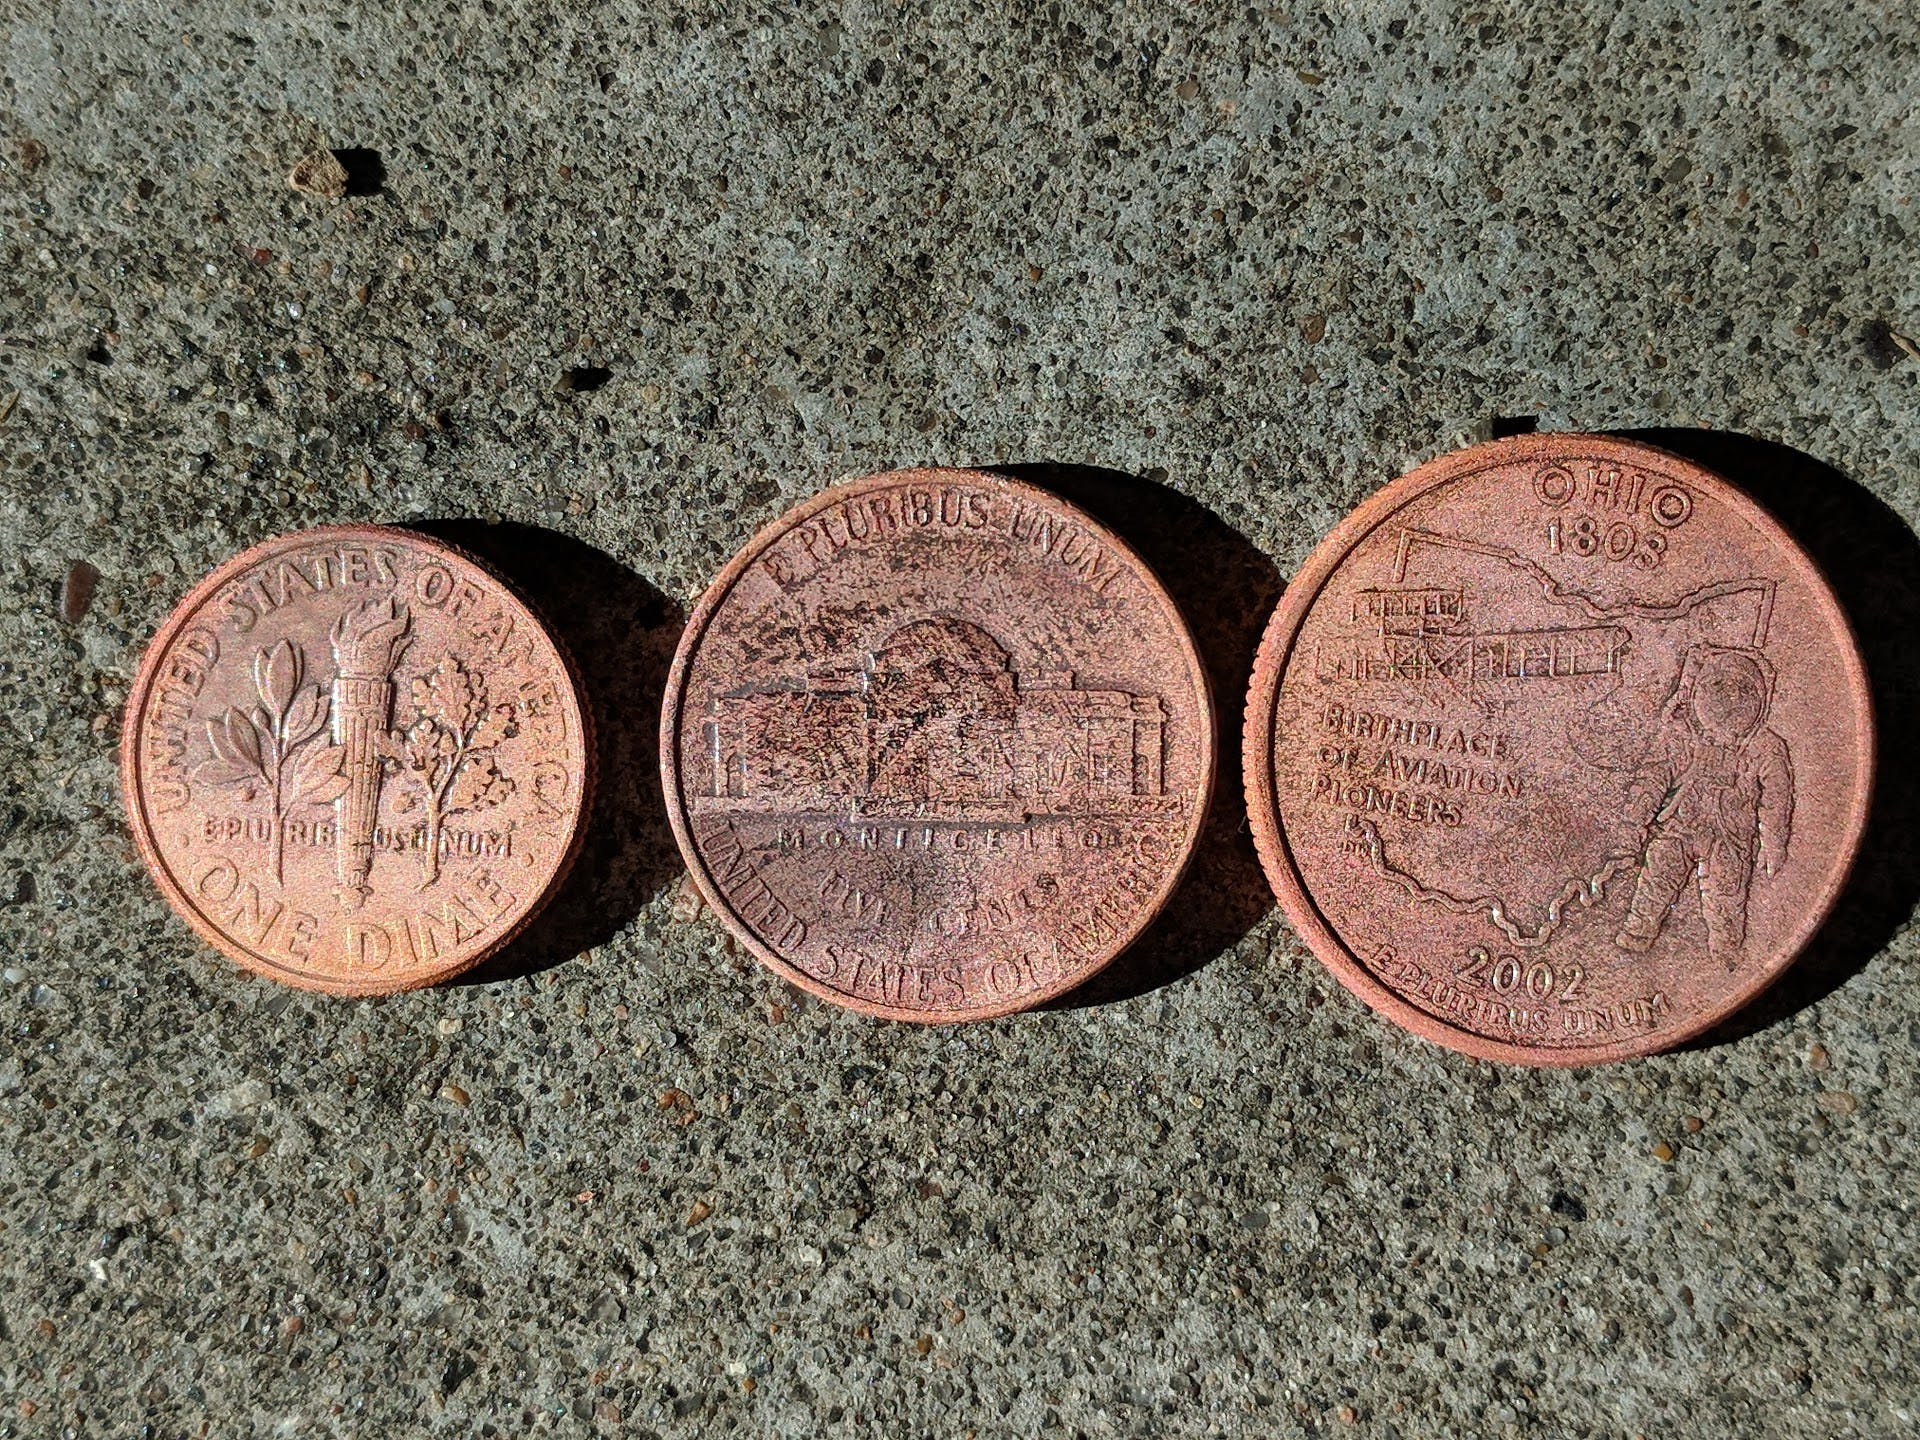 Copper plated coins (back)